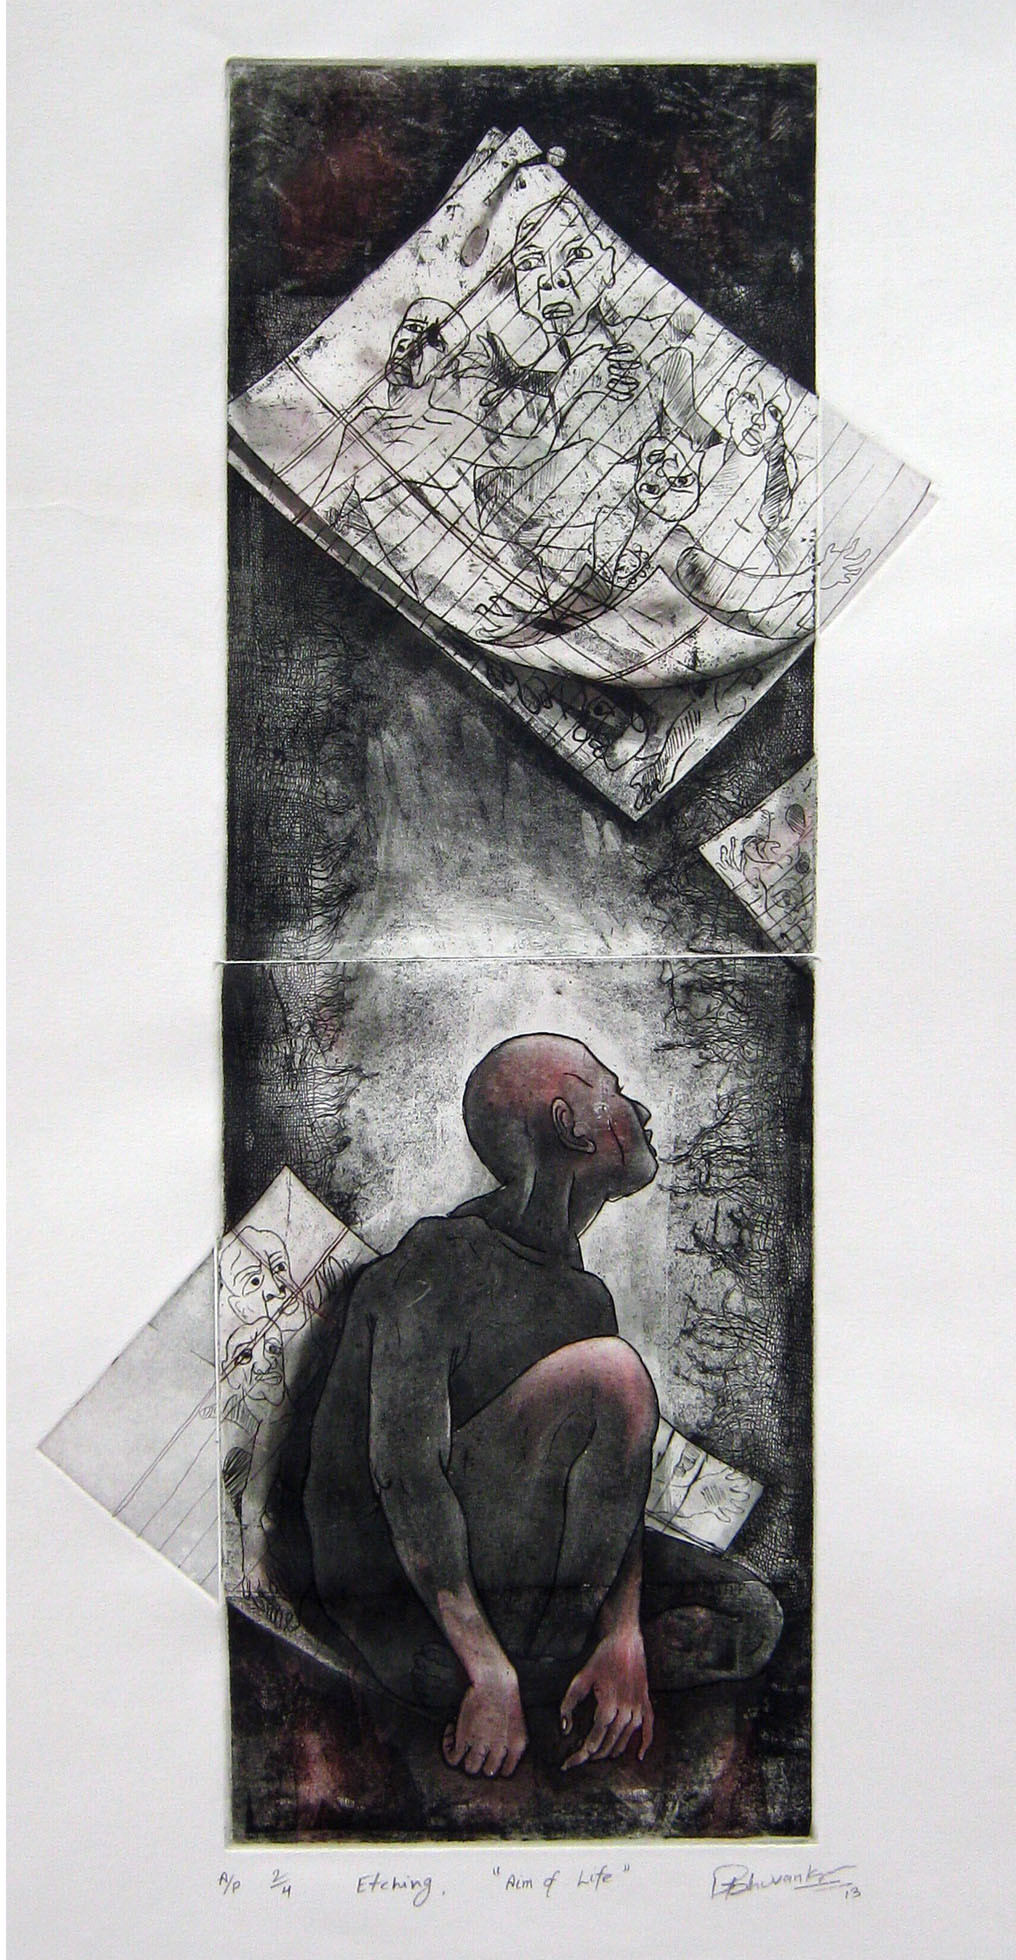 aim of life by Tribhuvan Kumar, Expressionism Printmaking, Etching and Aquatint, Gray color